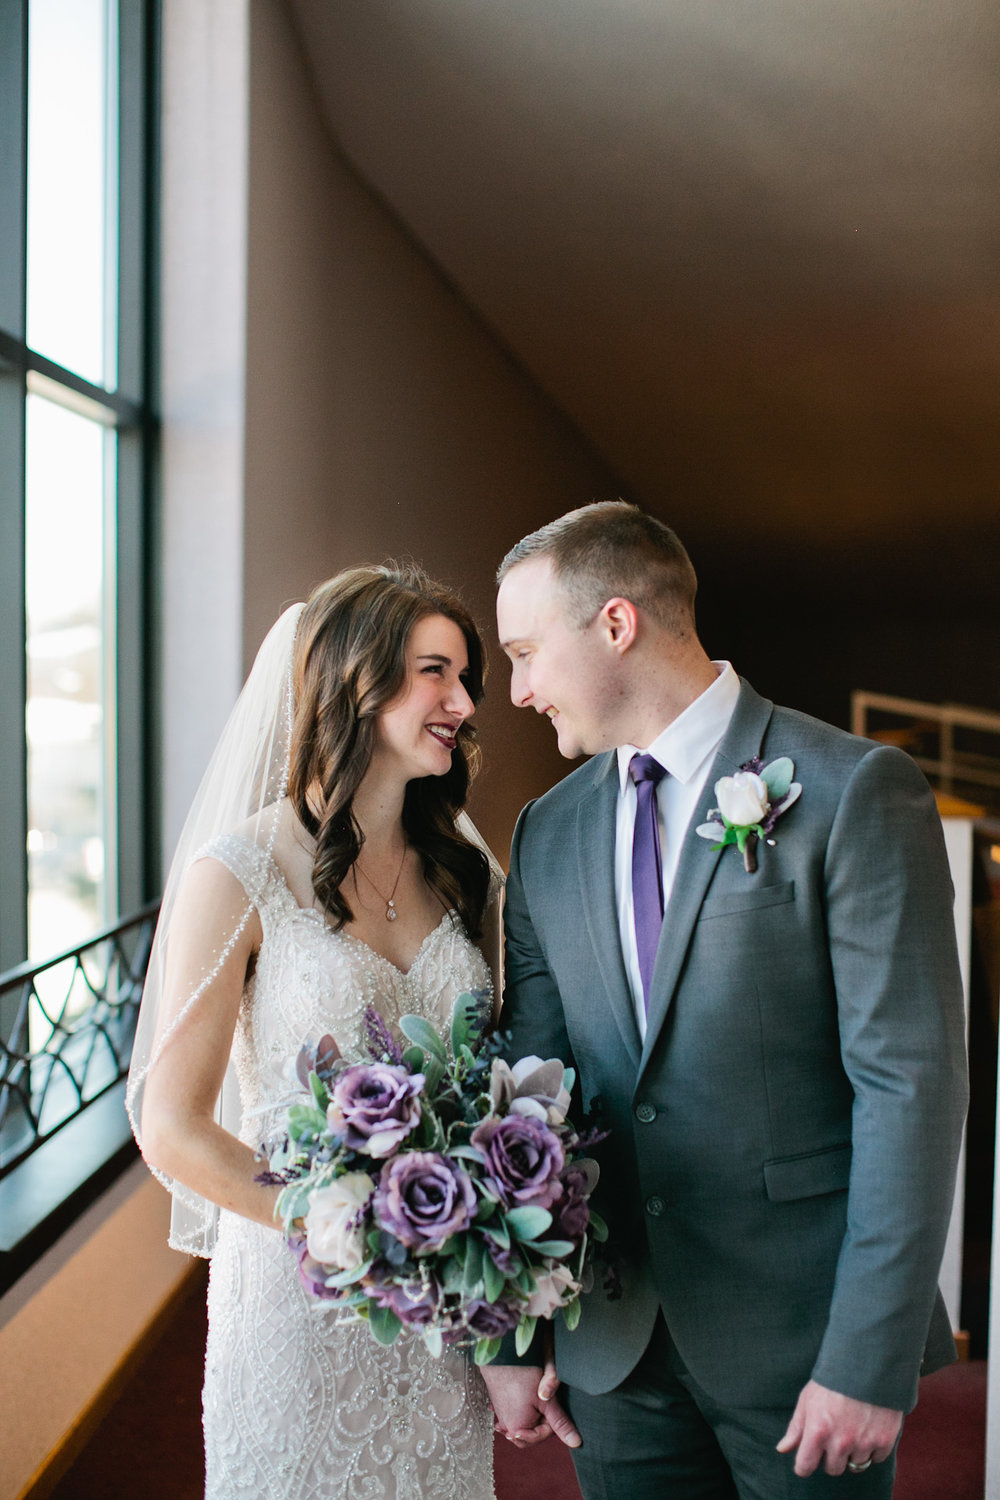 indoor wedding venues for winter wedding in Iowa